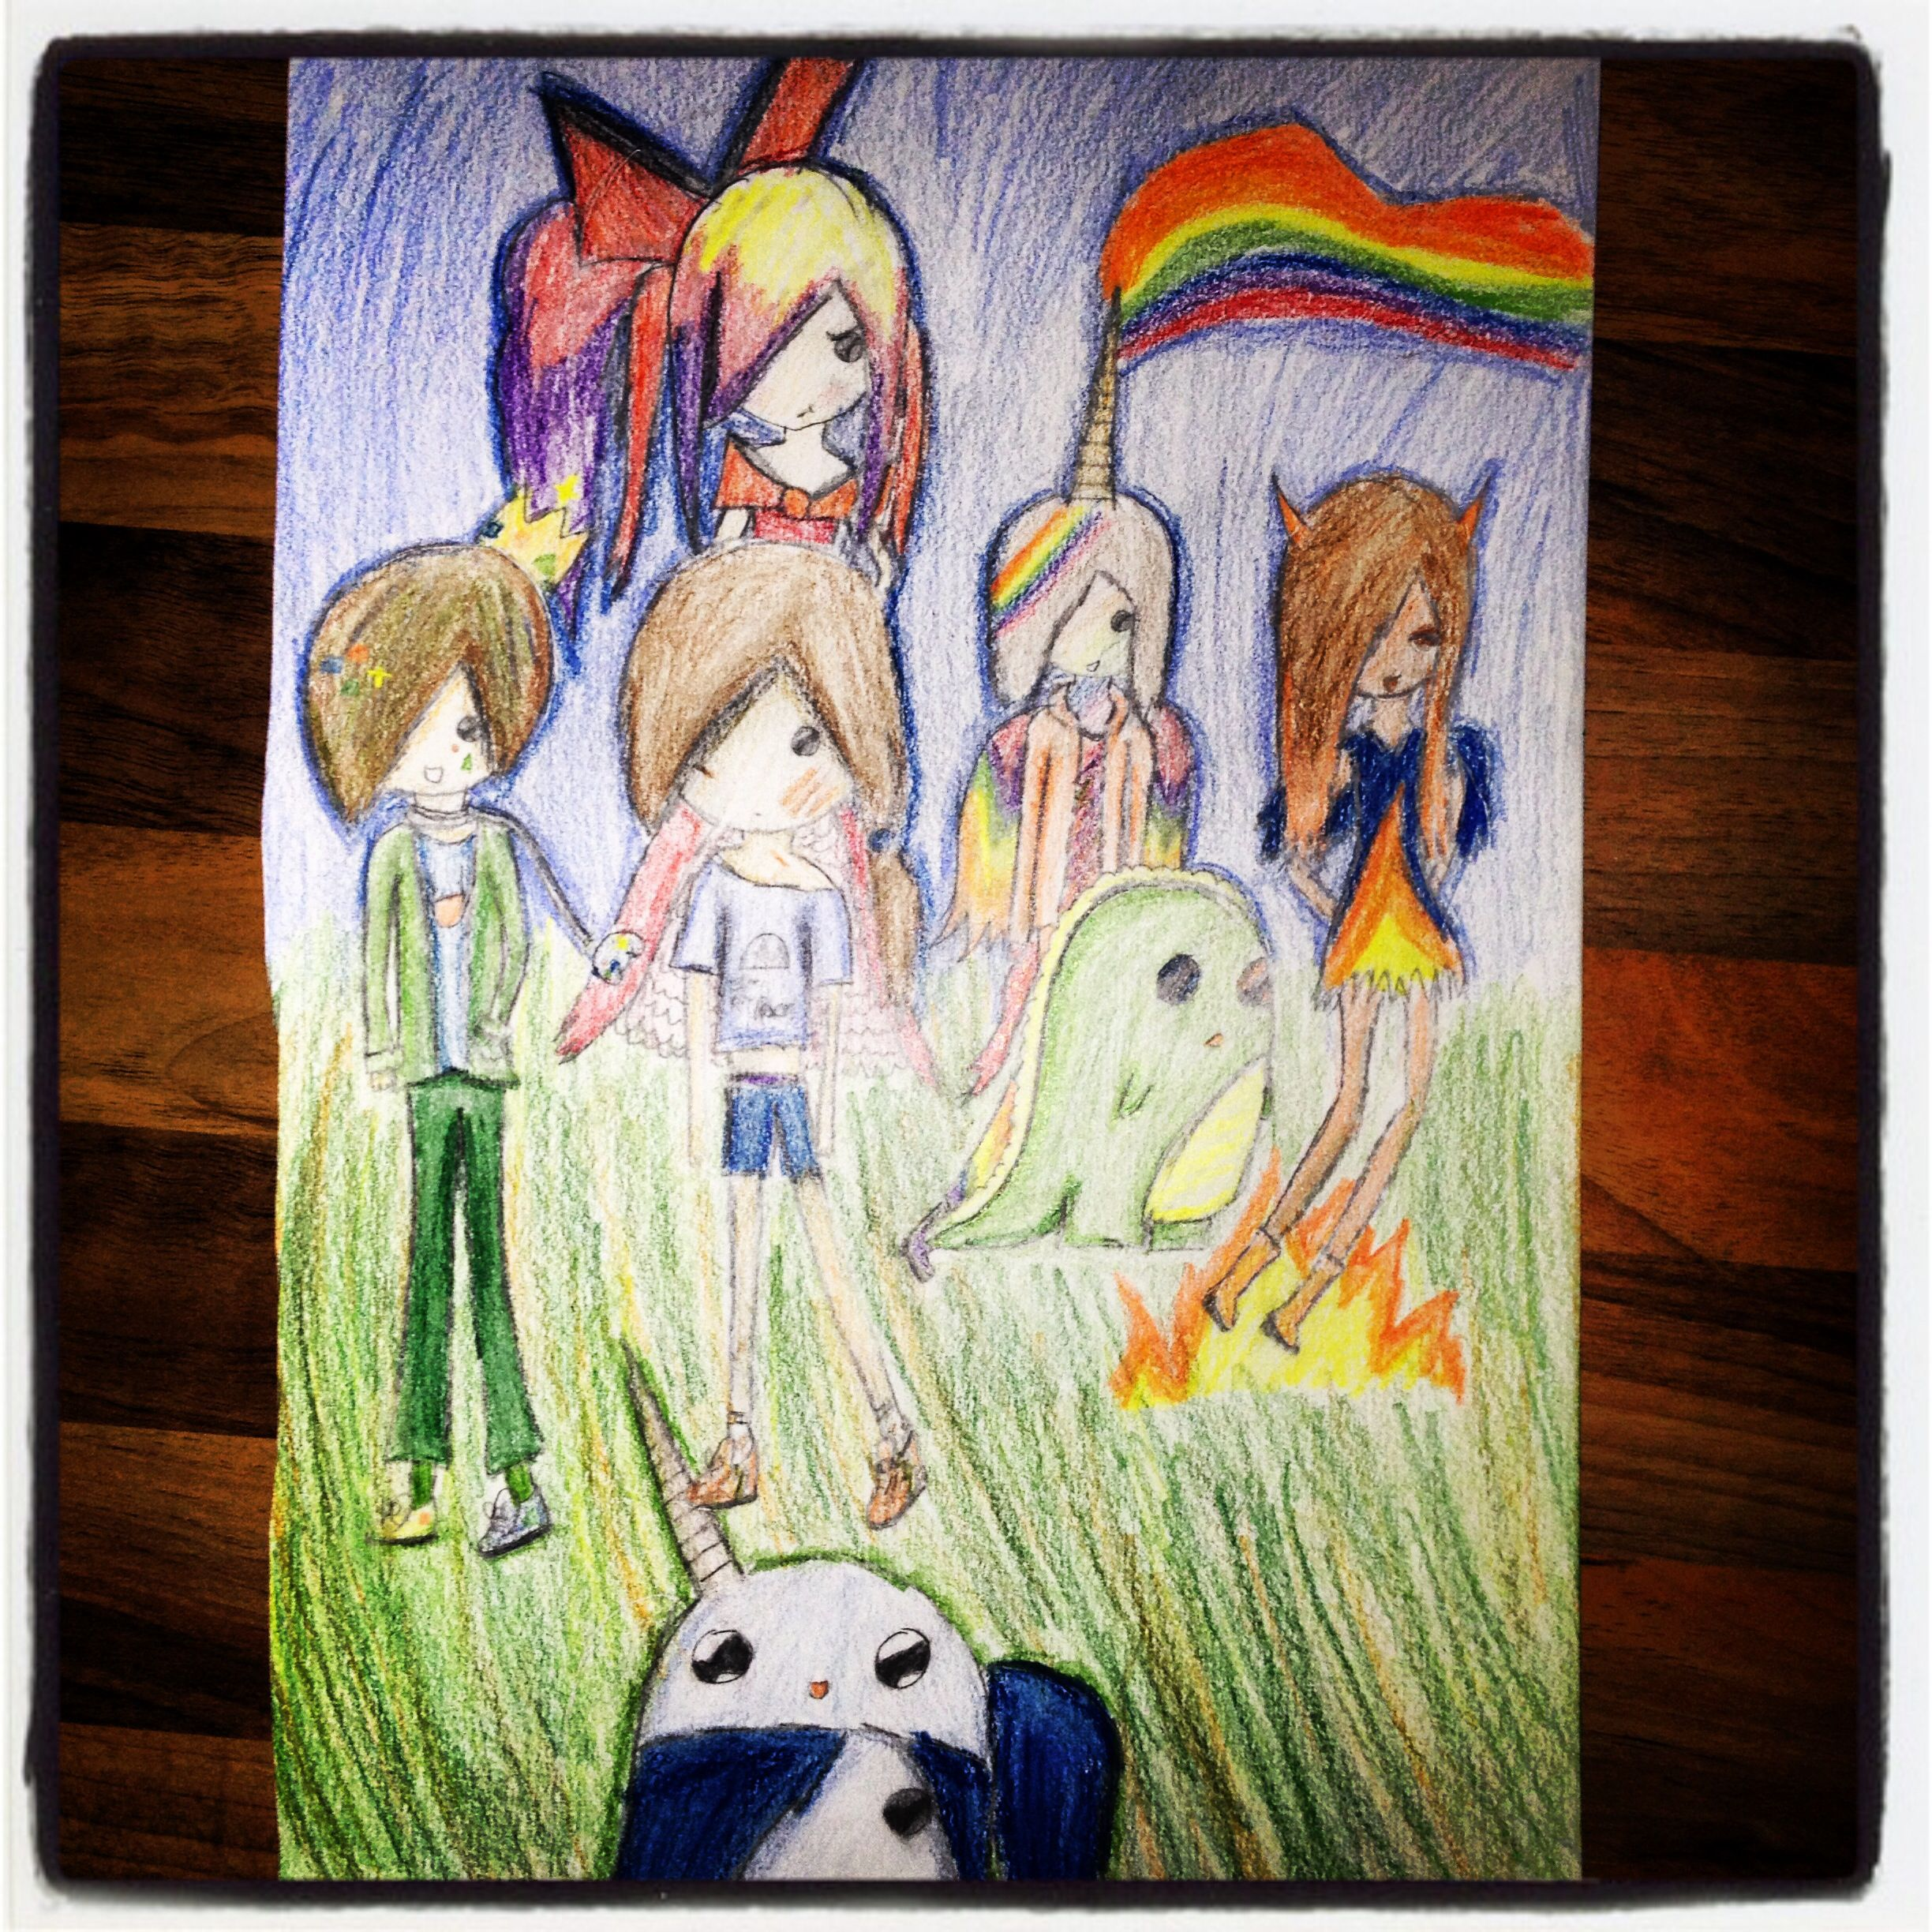 Psychedelic adventure time ocs adventure time pinterest